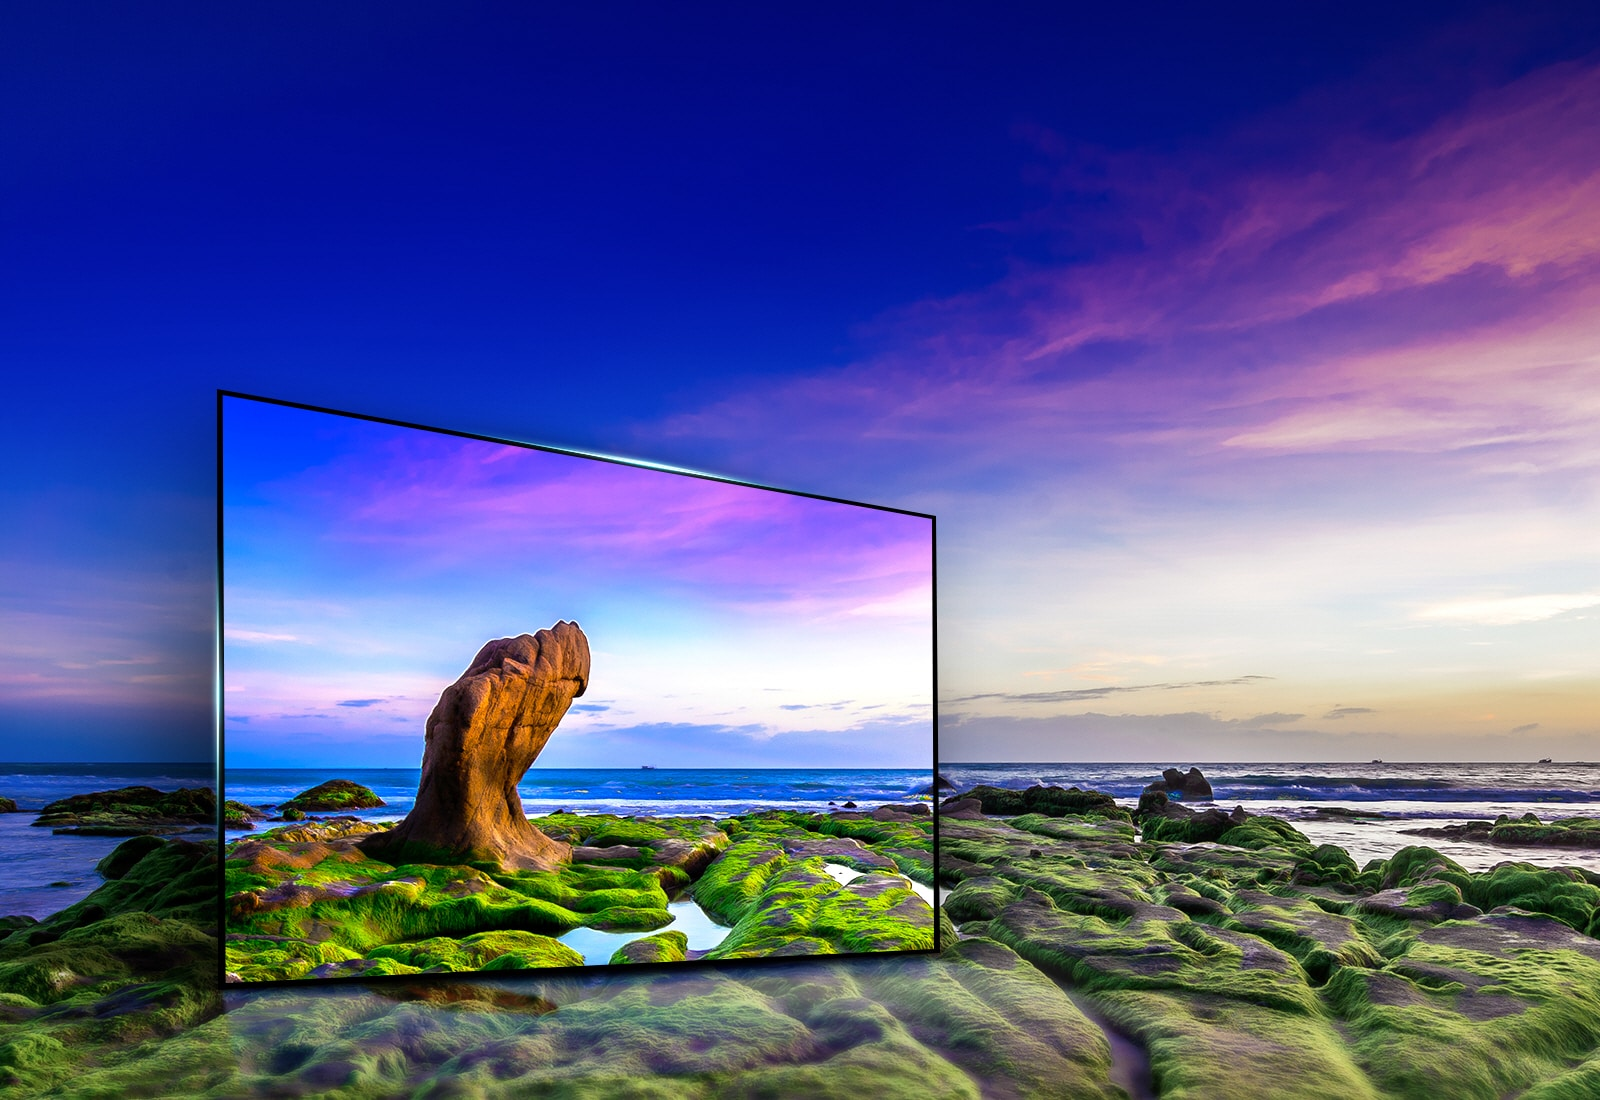 LG TV's - More consistent color and contrast from any seats